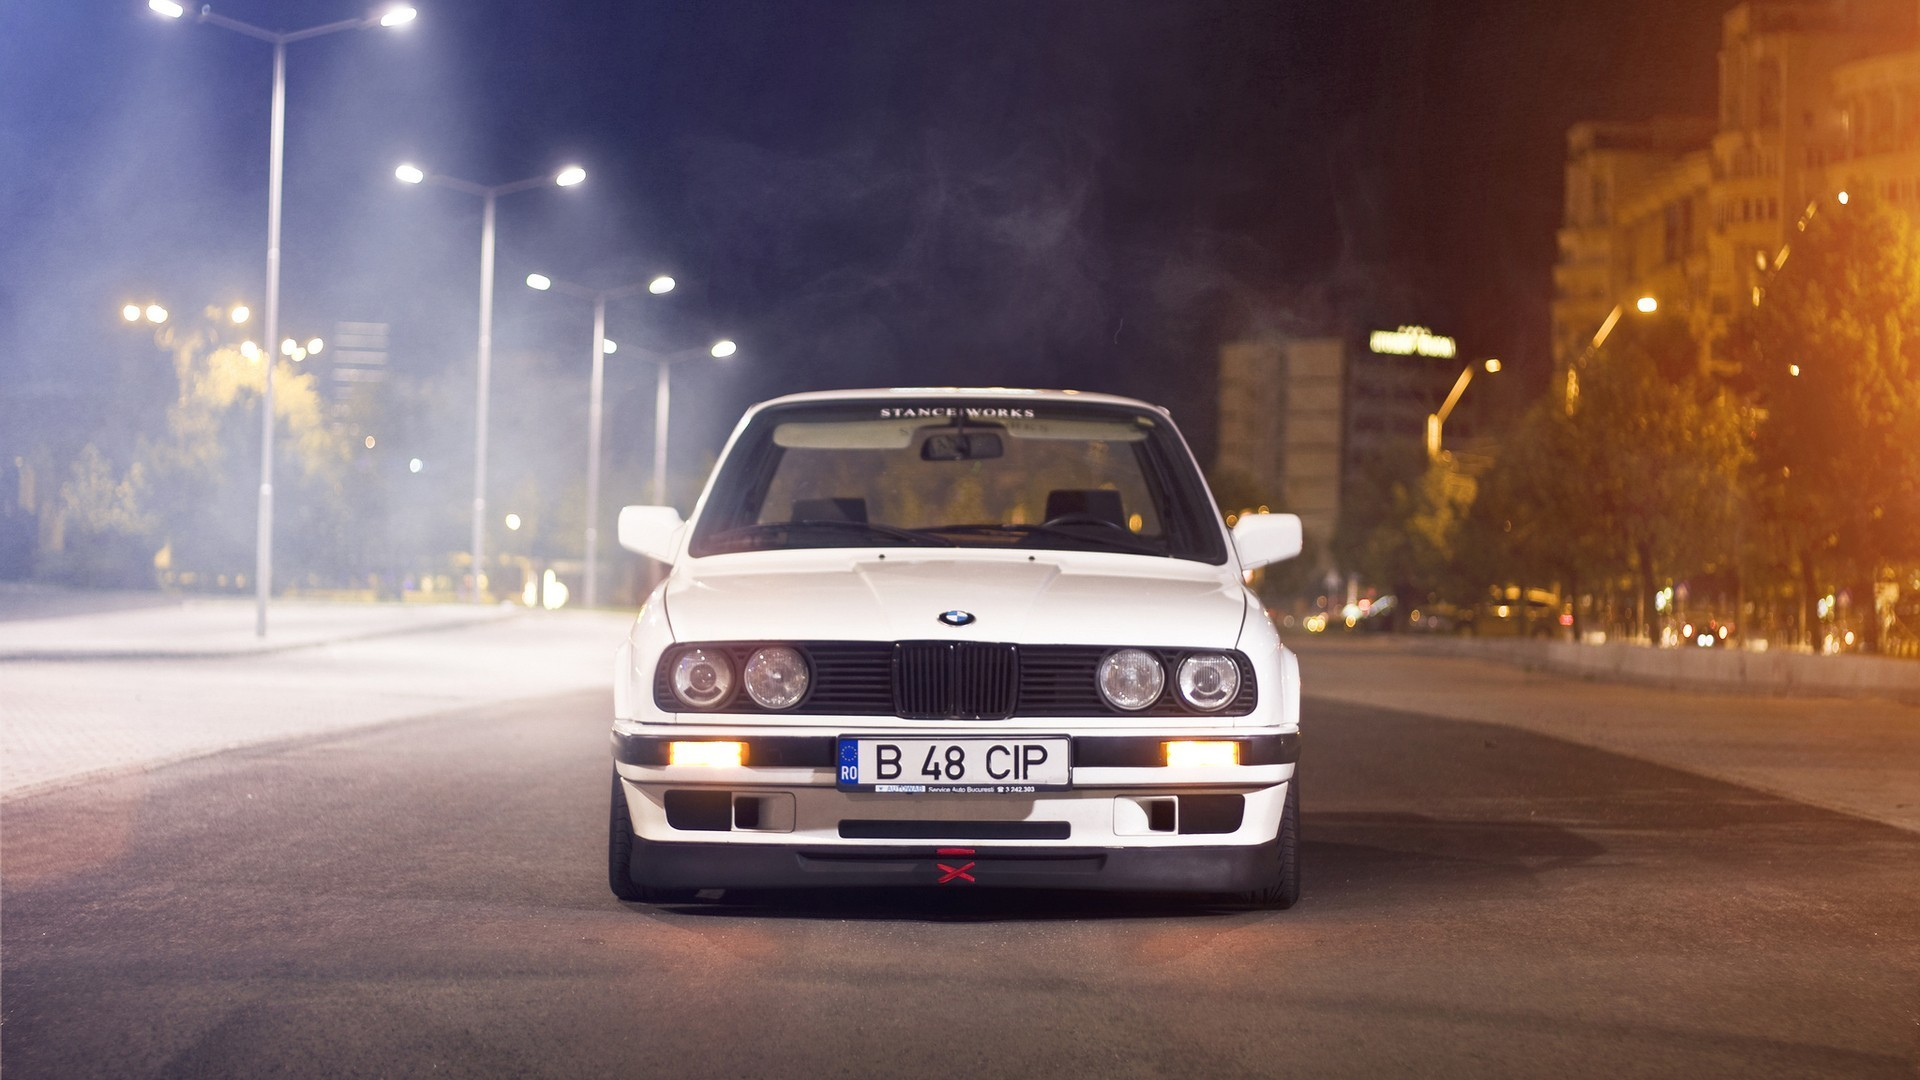 1920x1080 Bmw e30 stance wallpaper hd.